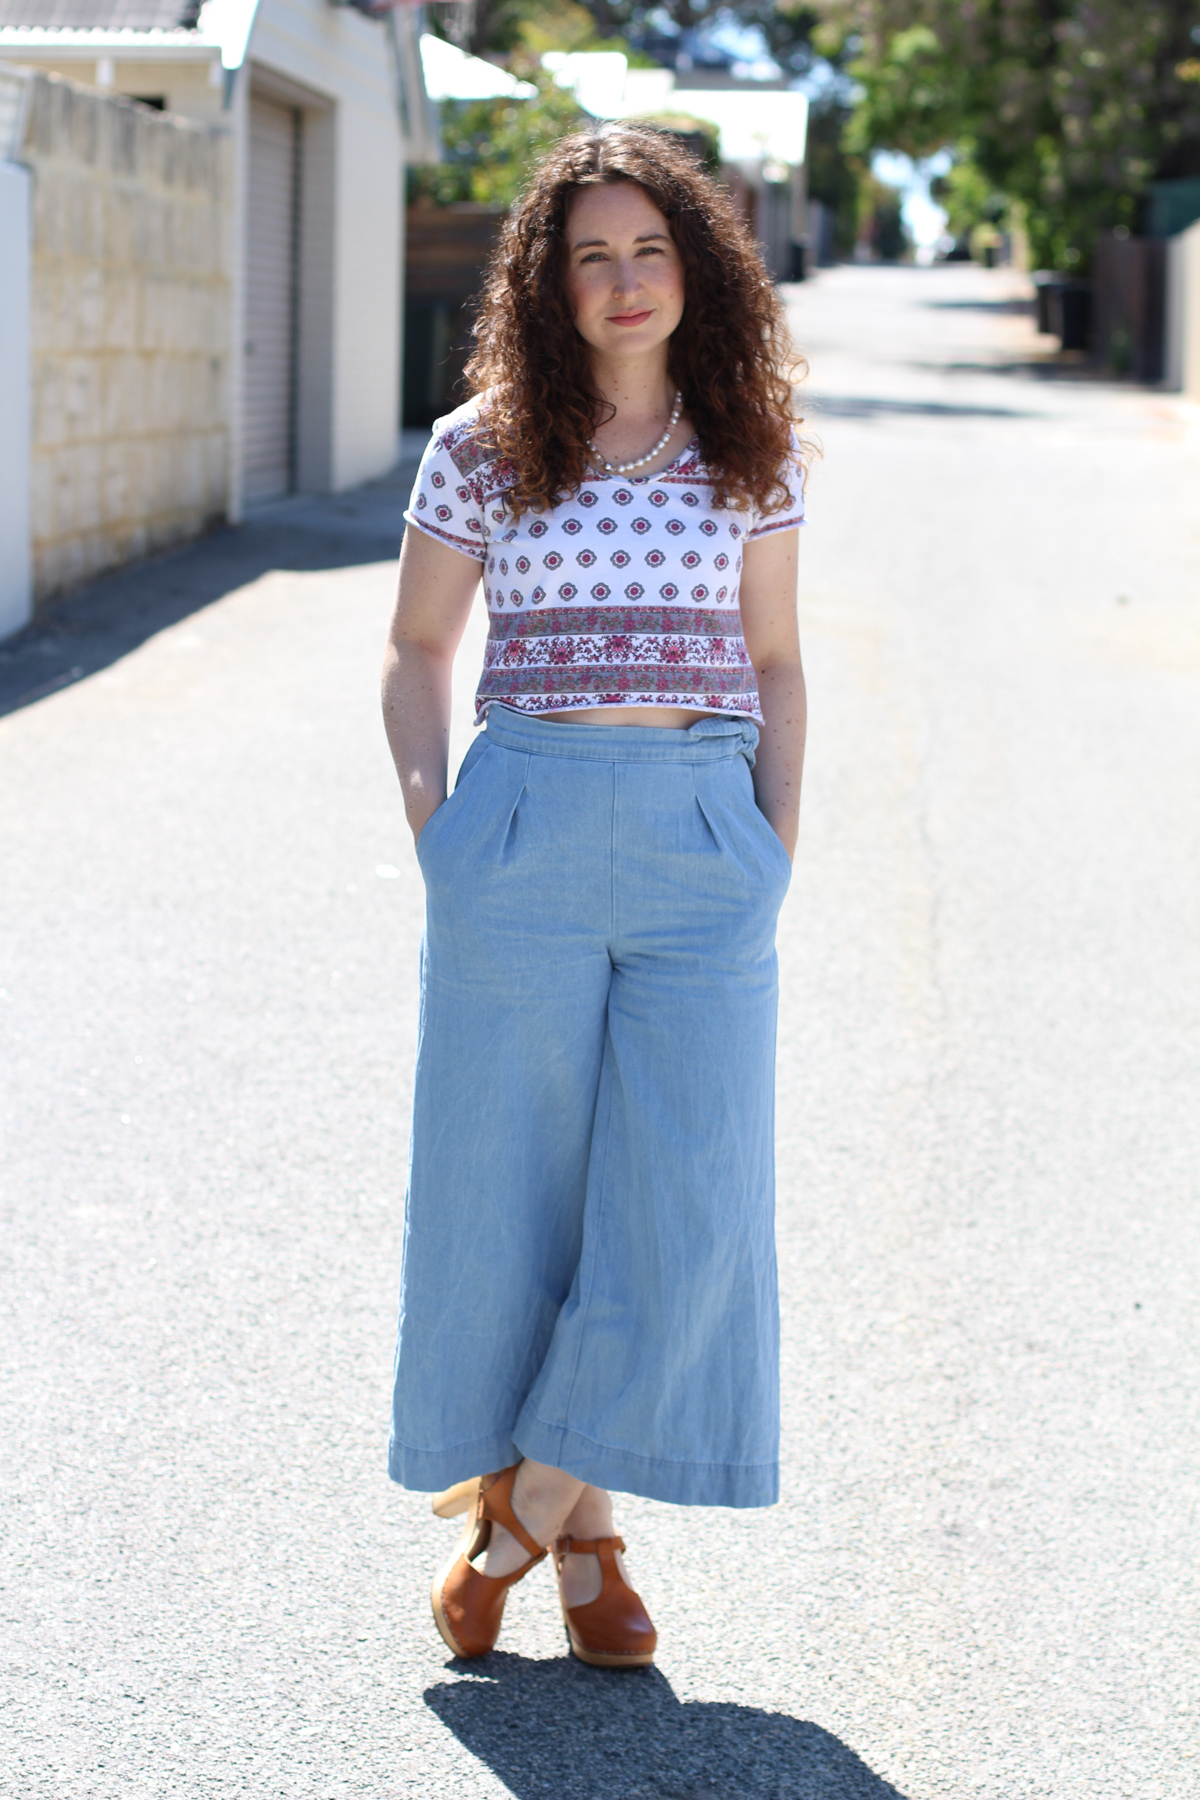 10 most worn makes in 10 years of blogging // Megan Nielsen denim Flint pants